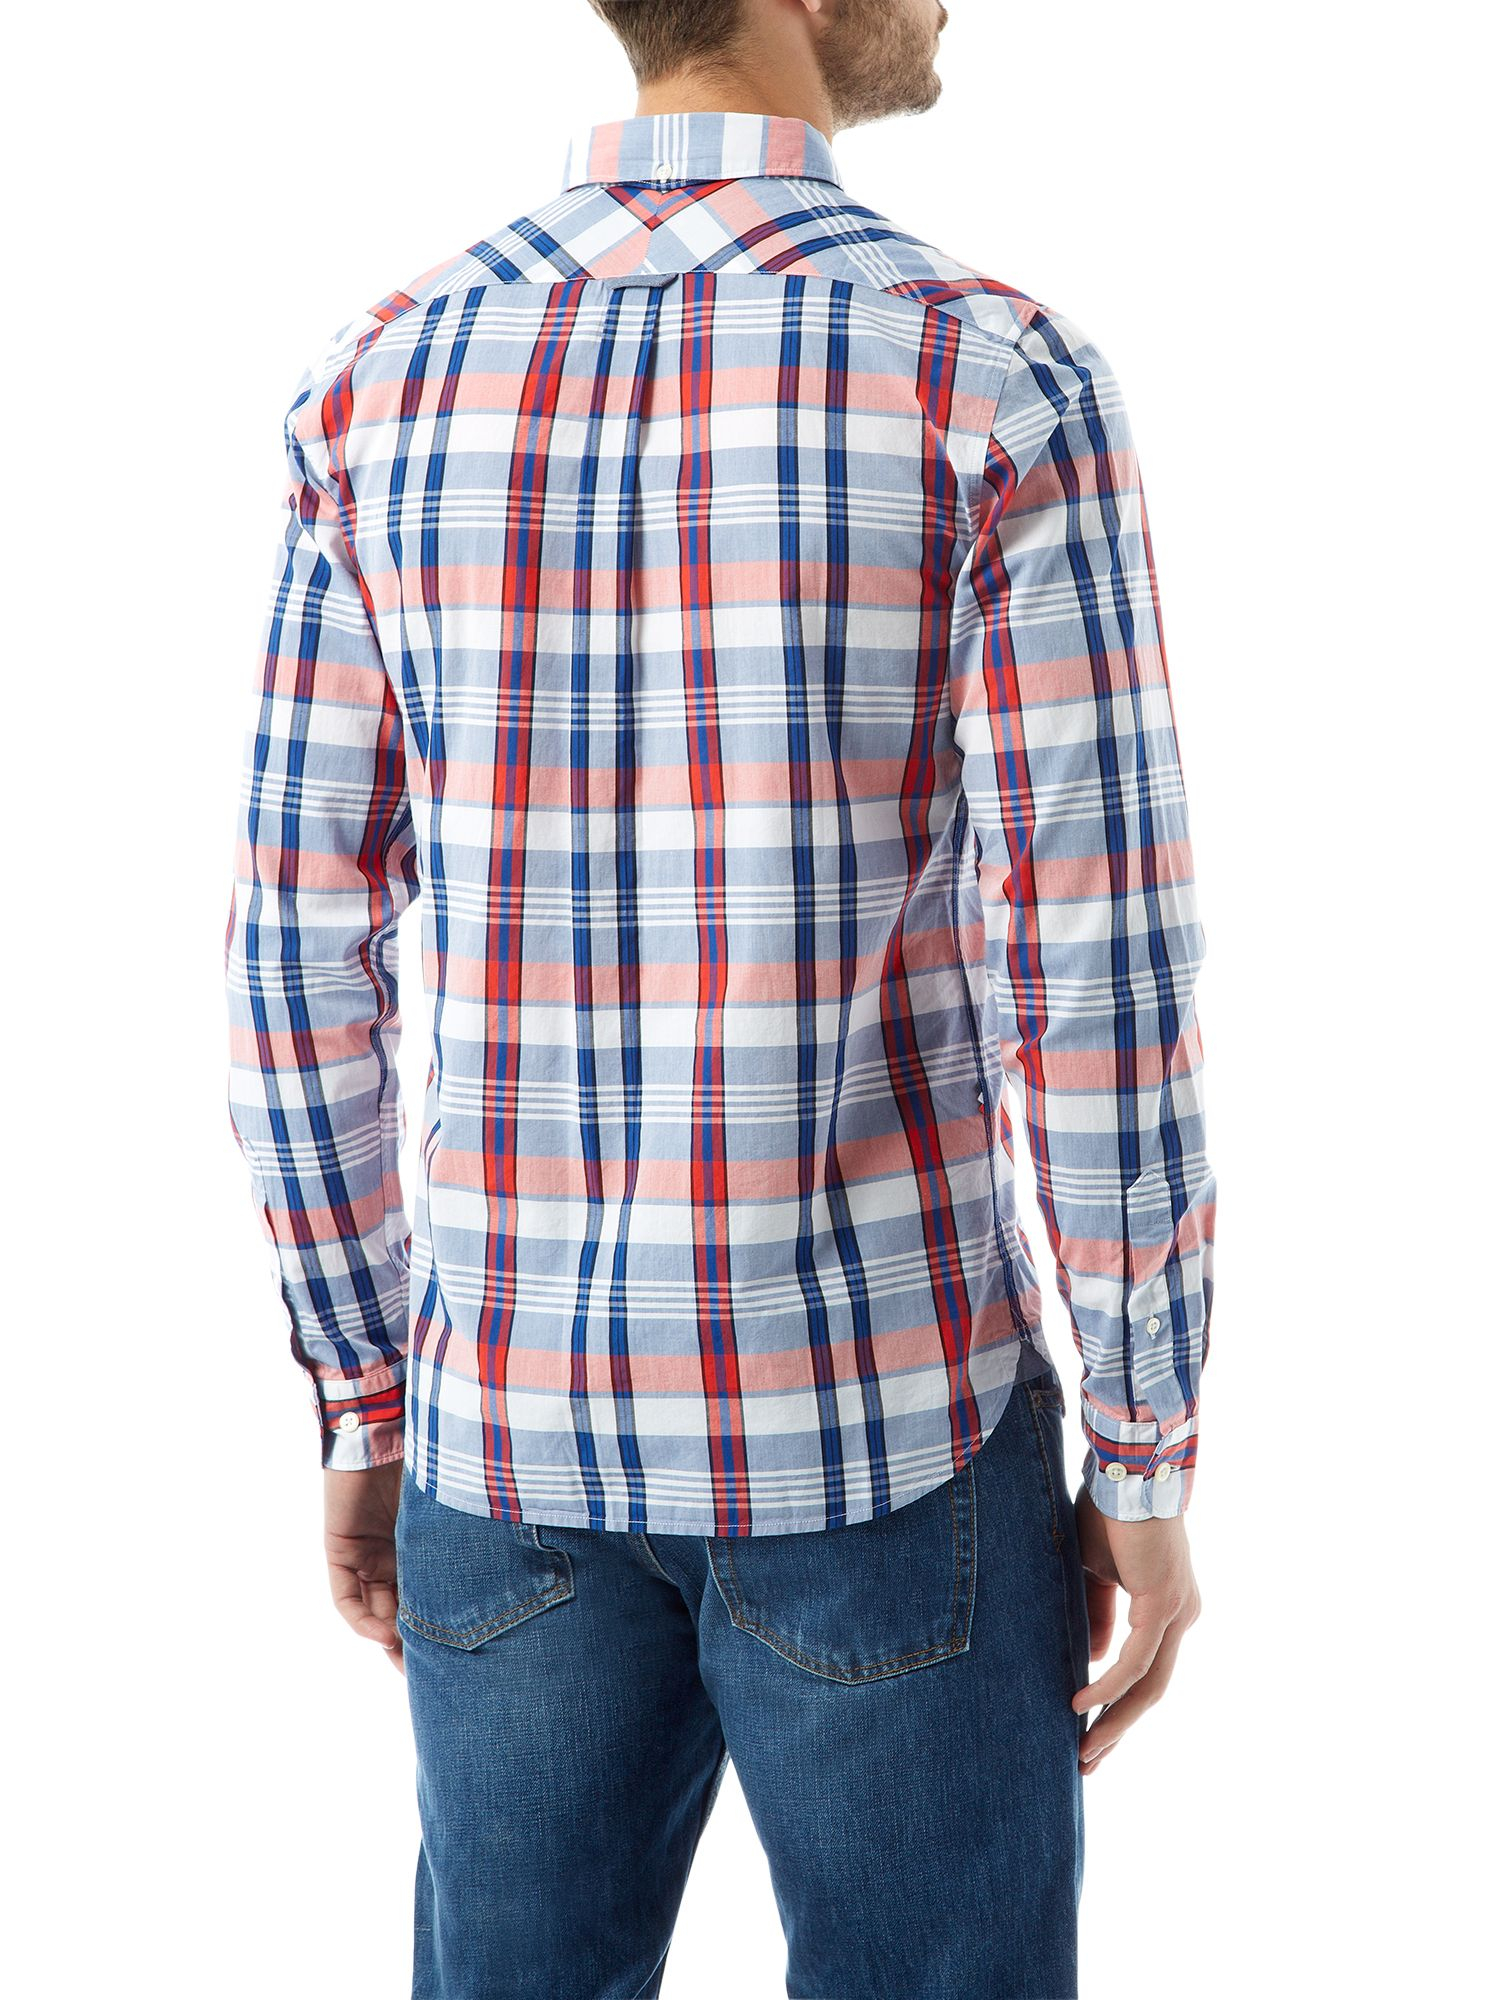 Lyst lacoste check slim fit long sleeve button down for Athletic fit button down shirts